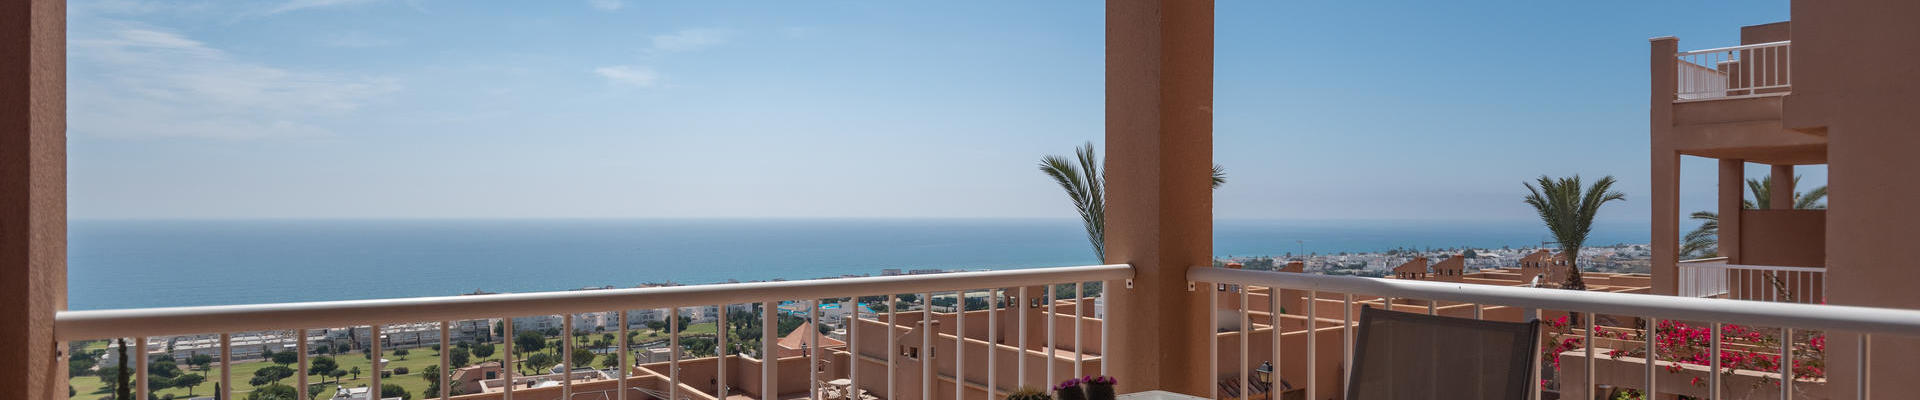 A1403: 3 Bedroom Apartment for Sale